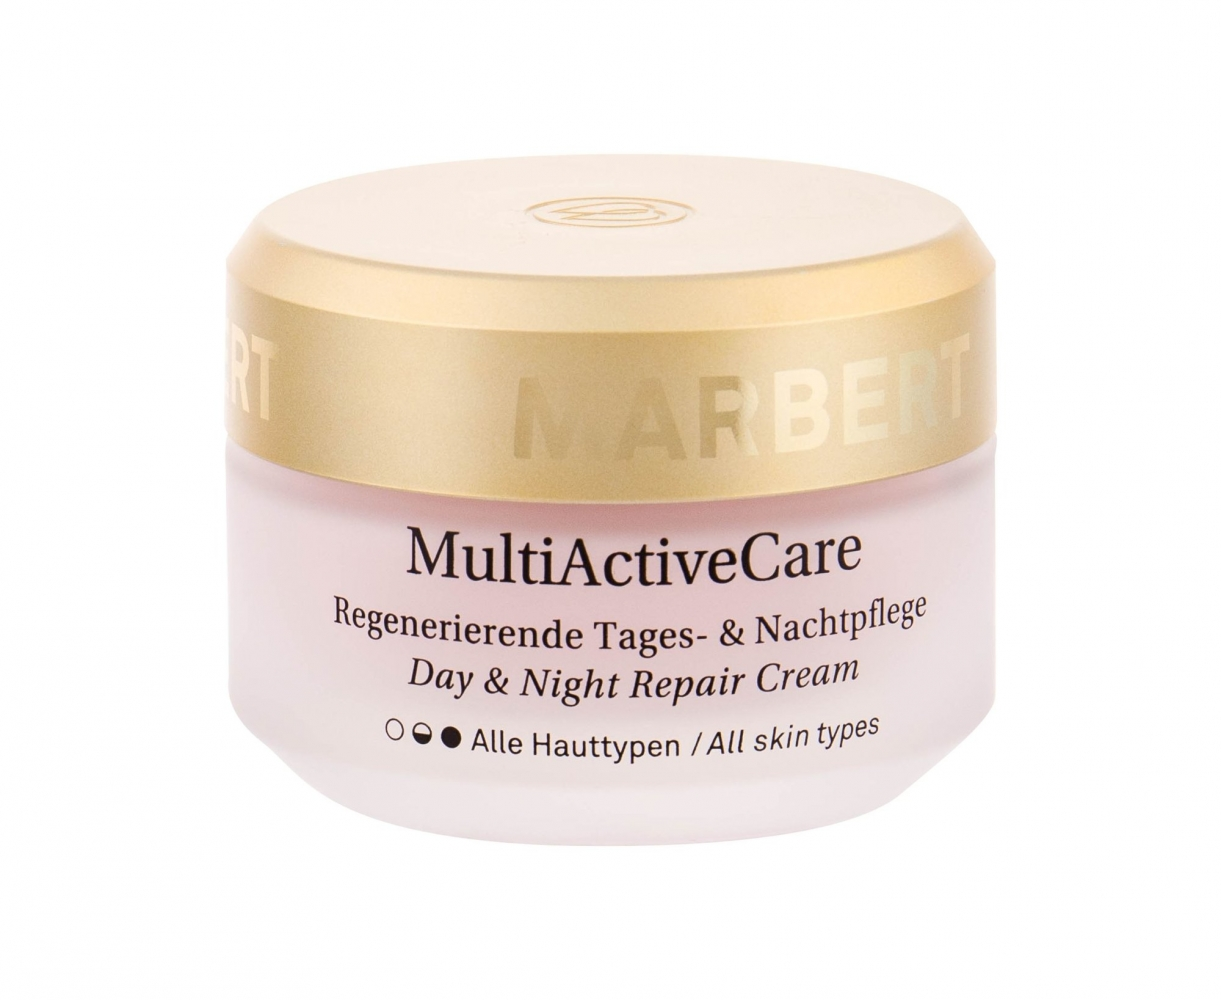 Mergi la Anti-Aging Care MultiActive Care Regenerating Day & Night Cream - Marbert - Crema de zi